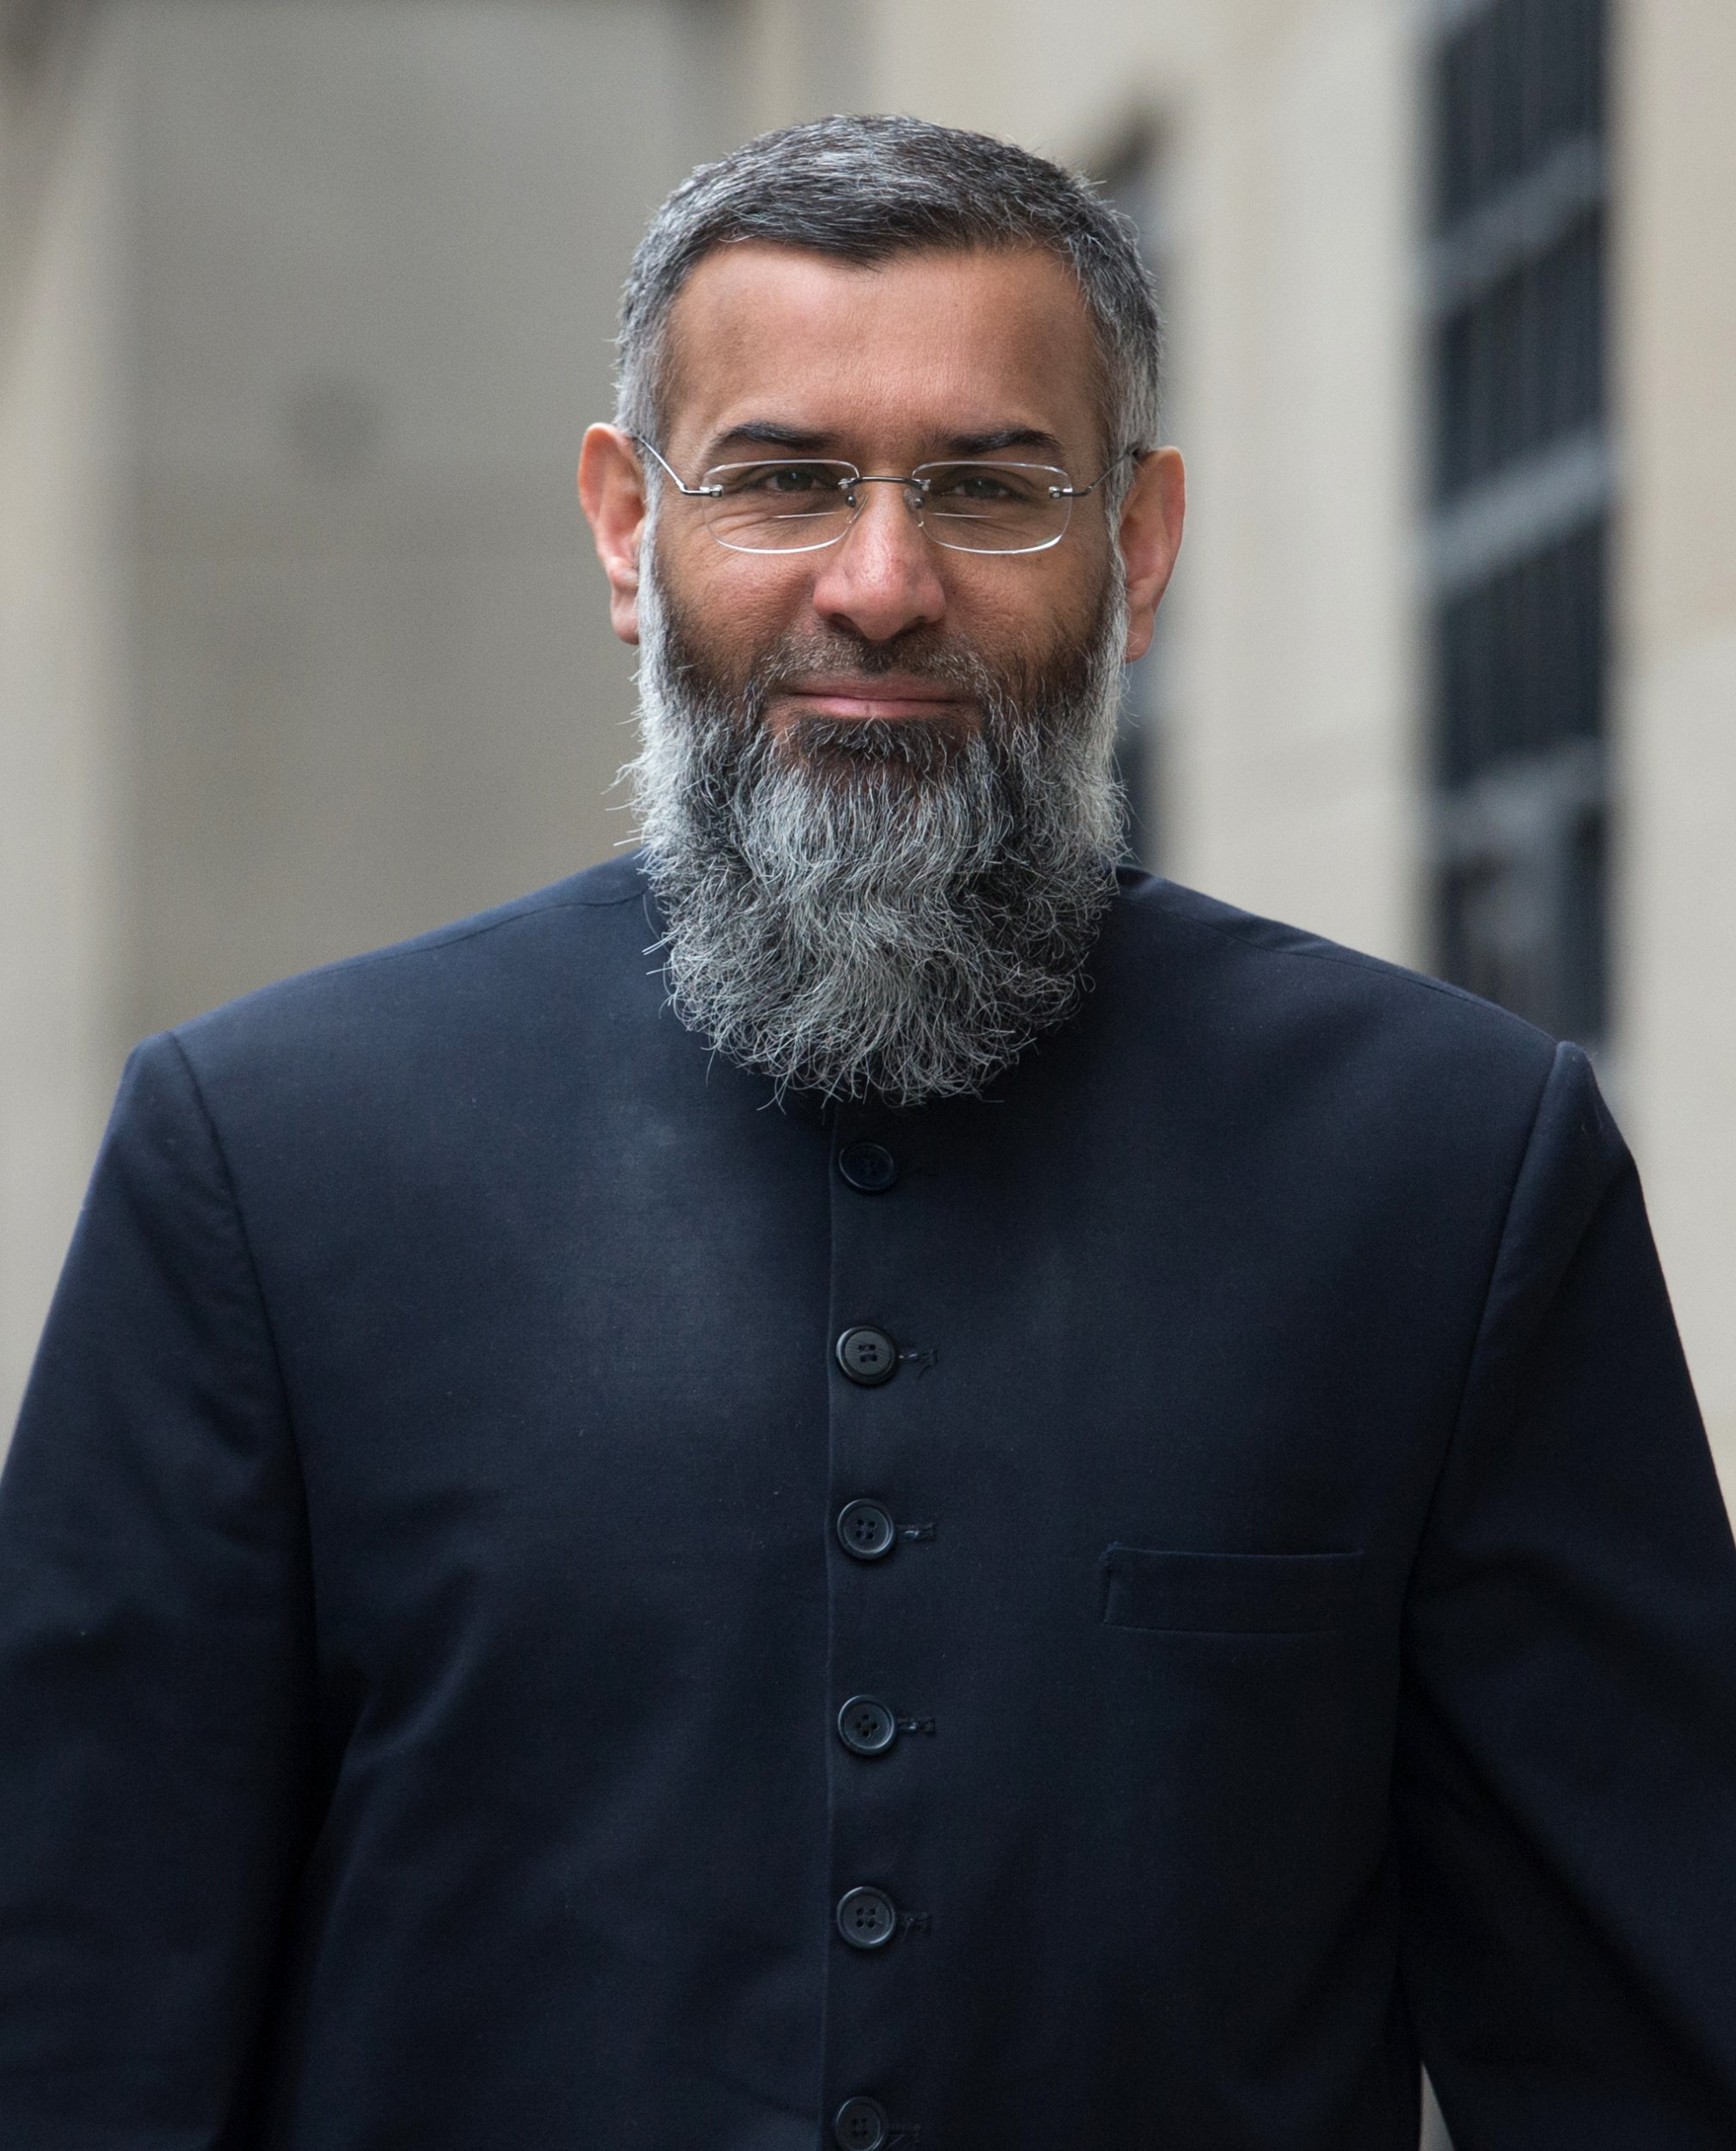 """File photo dated 24/03/16 of Anjem Choudary, who remains """"genuinely dangerous"""", the Prisons Minister has warned ahead of the Islamist hate preacher's release from prison. PRESS ASSOCIATION Photo. Issue date: Tuesday September 11, 2018. Rory Stewart assured that the """"completely pernicious"""" cleric would be watched """"very, very carefully"""" by police and security services when he is freed next month. See PA story POLITICS Choudary. Photo credit should read: Stefan Rousseau/PA Wire"""